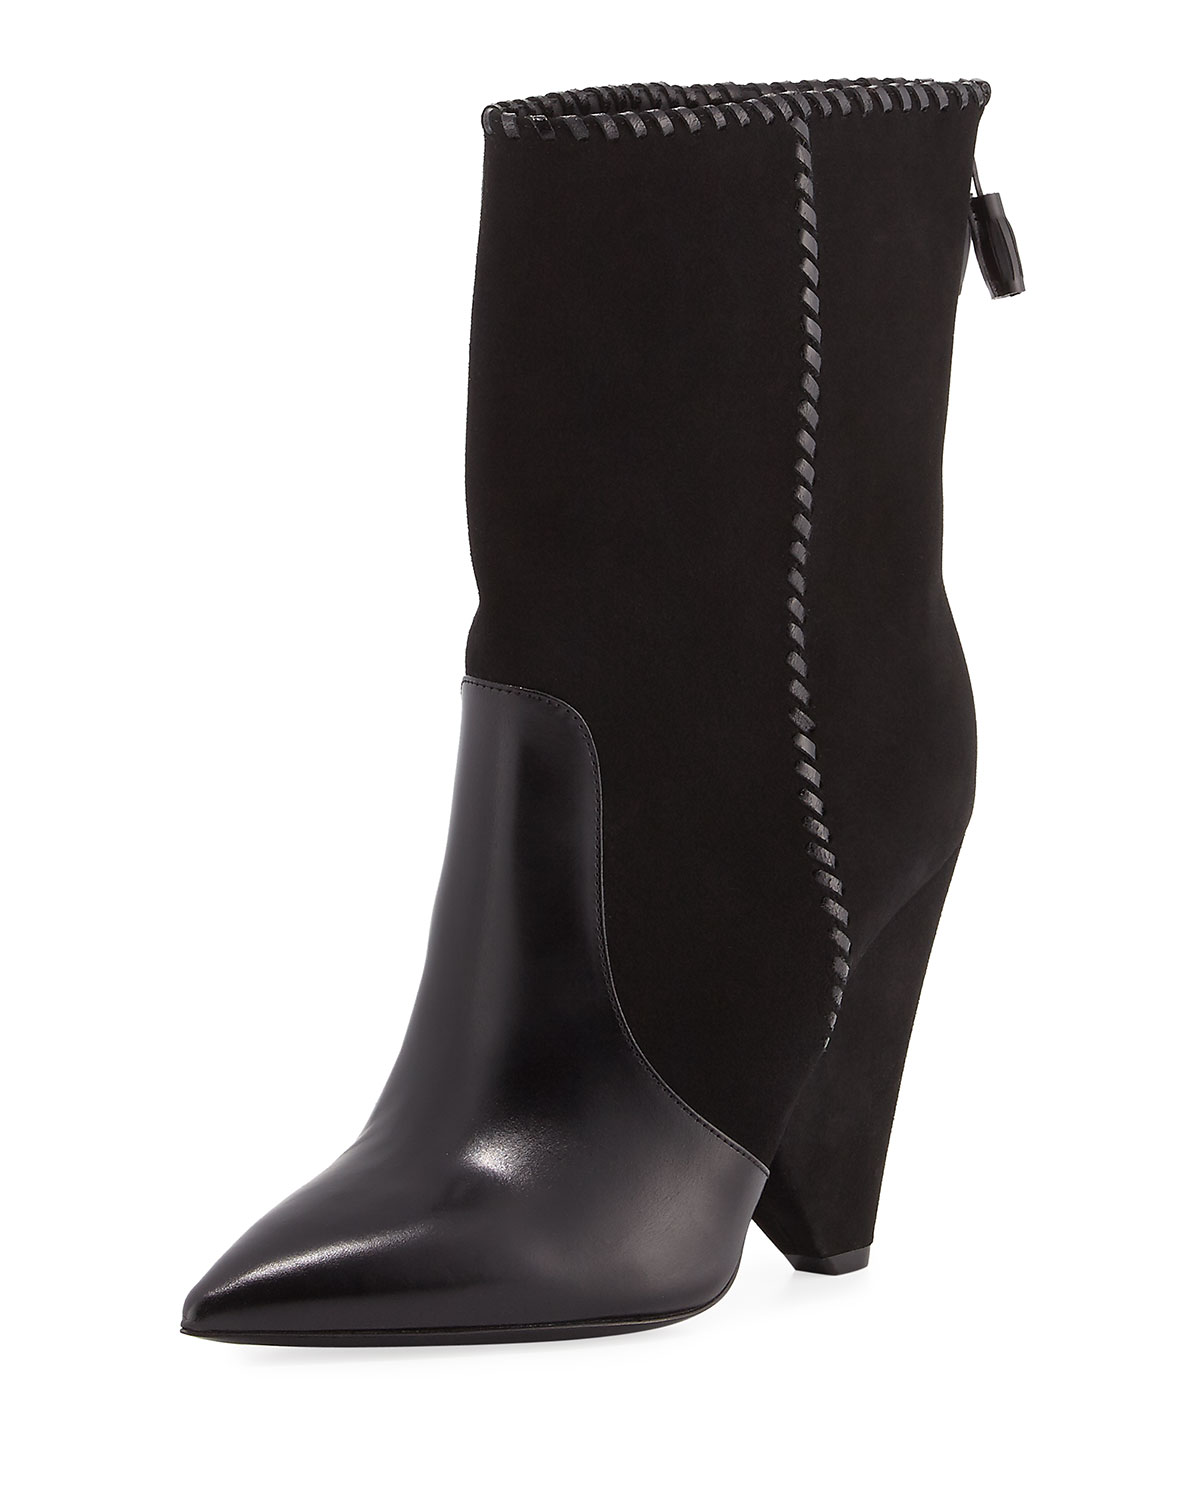 95f0363ced81 Saint Laurent Niki Mixed Leather Mid-Calf Boots